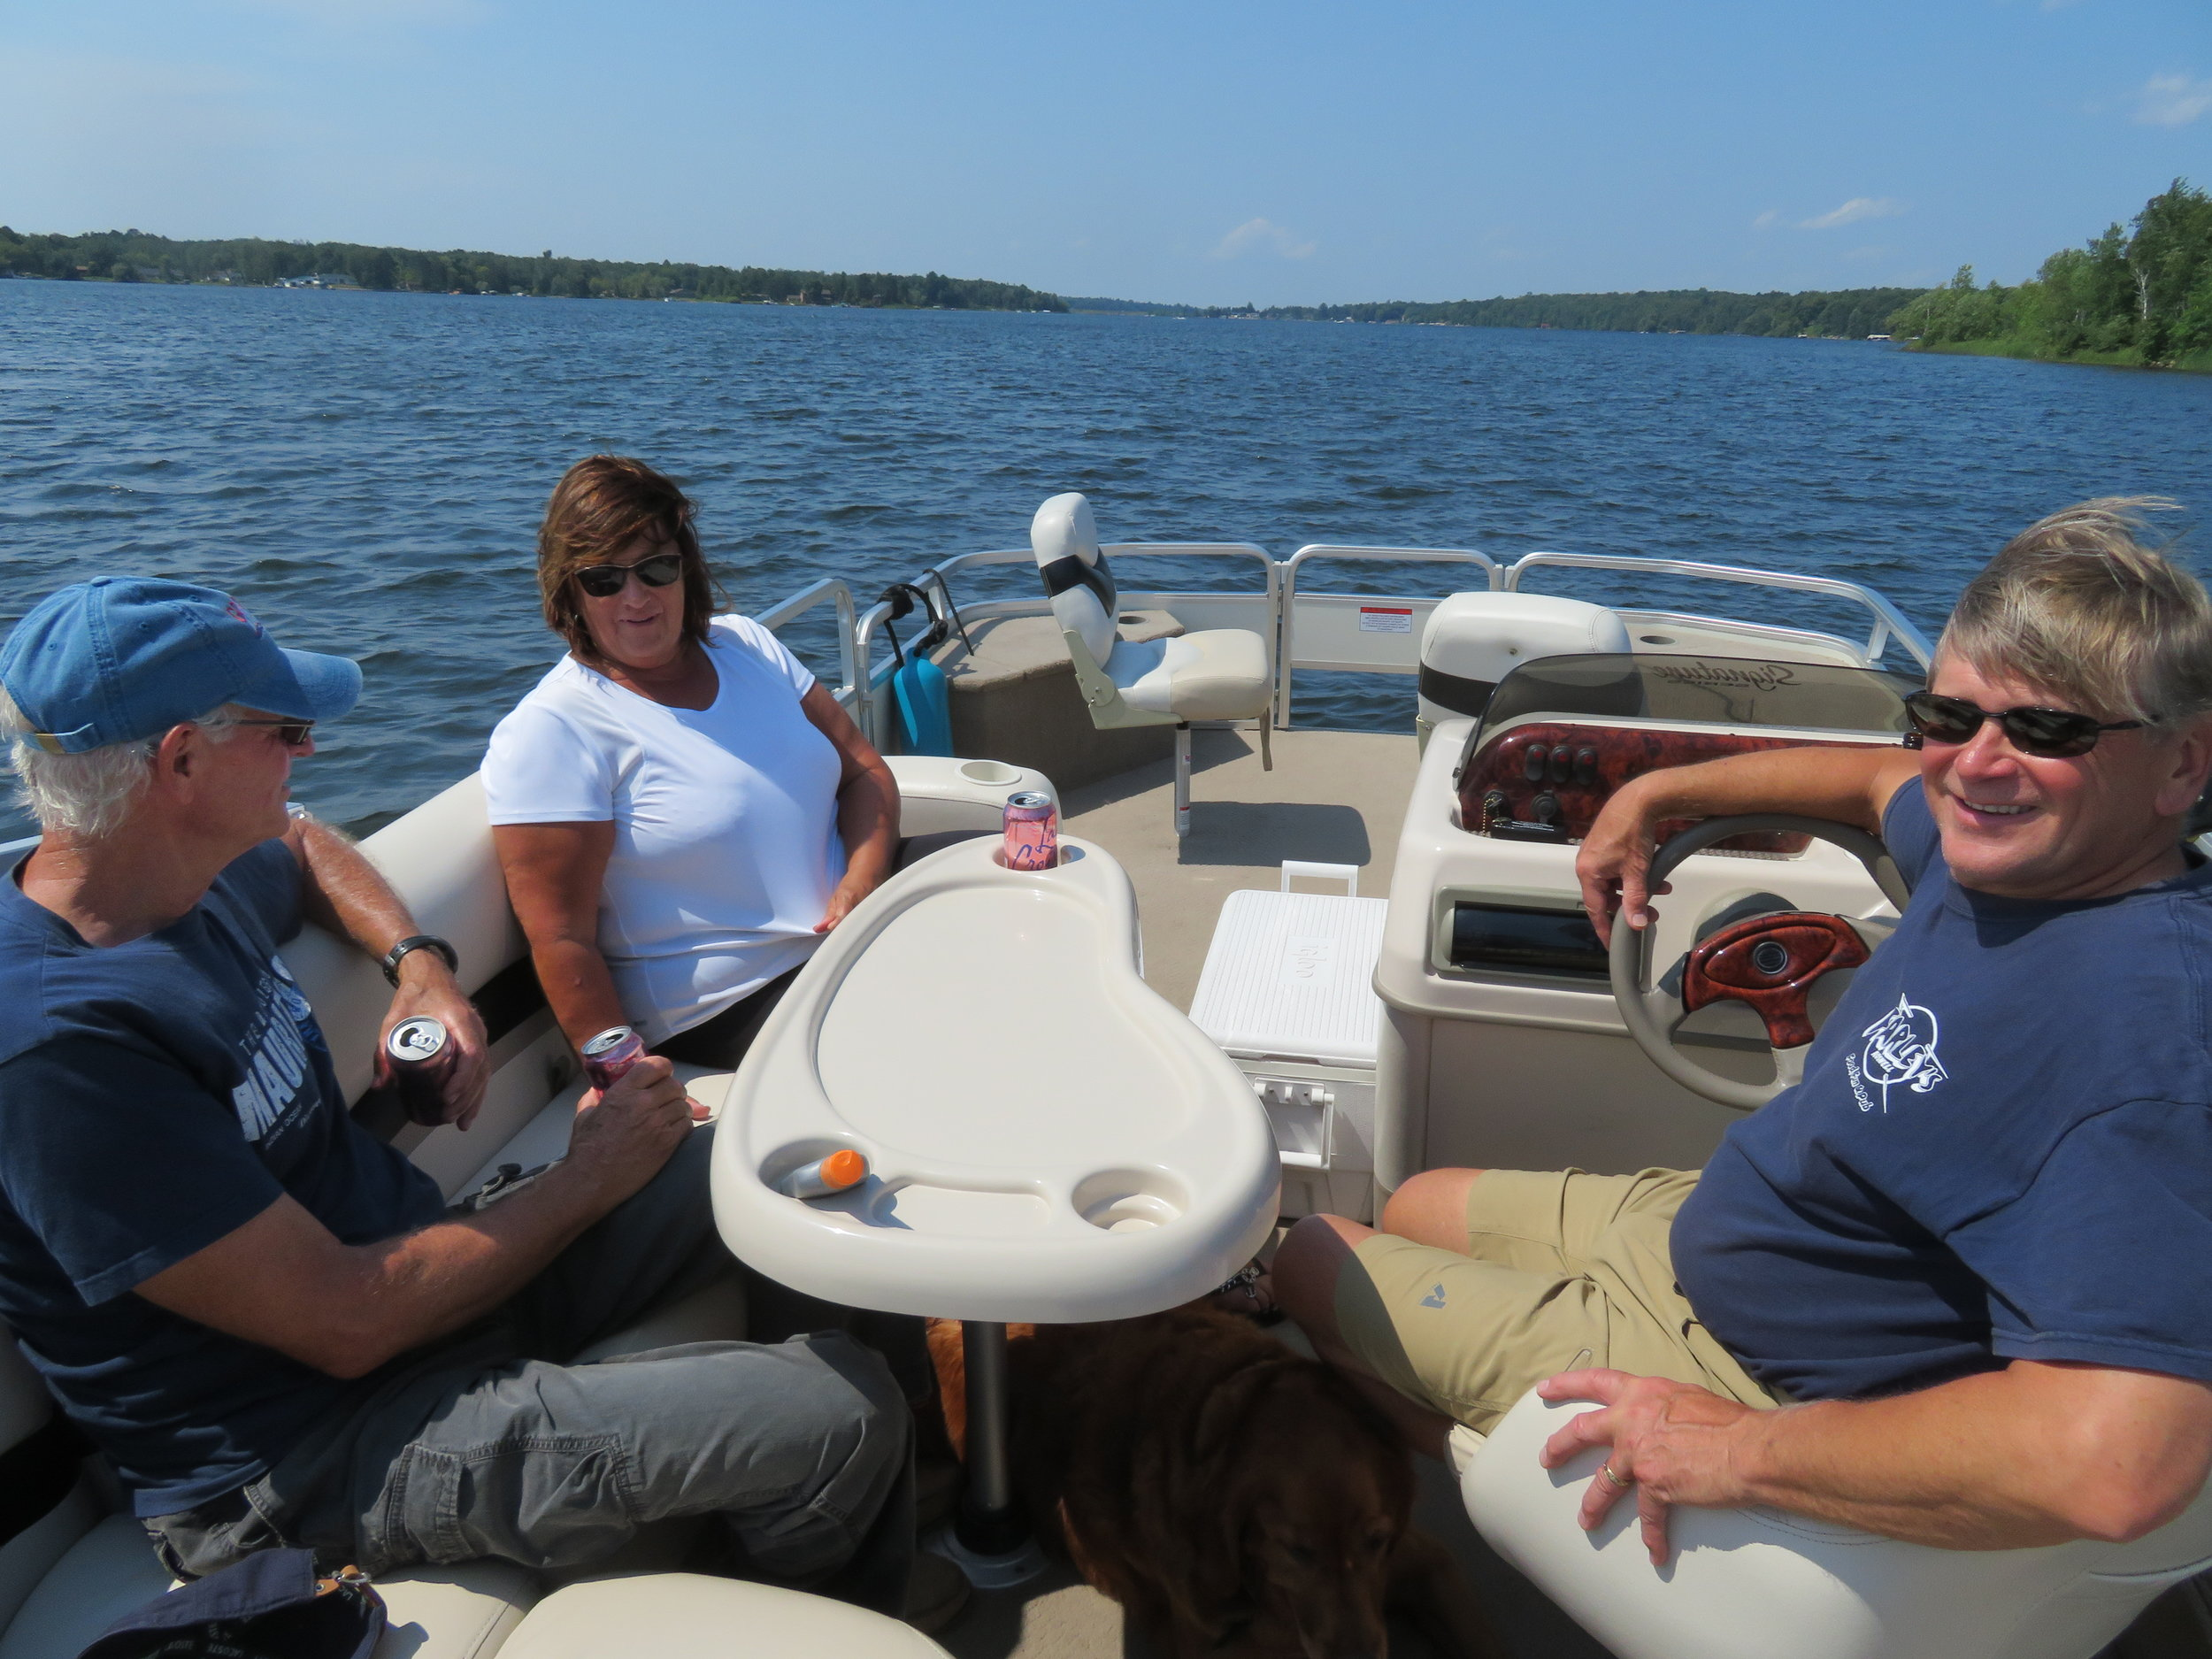 Pontoon boat ride on Lake Pokegama with Diane & Steve